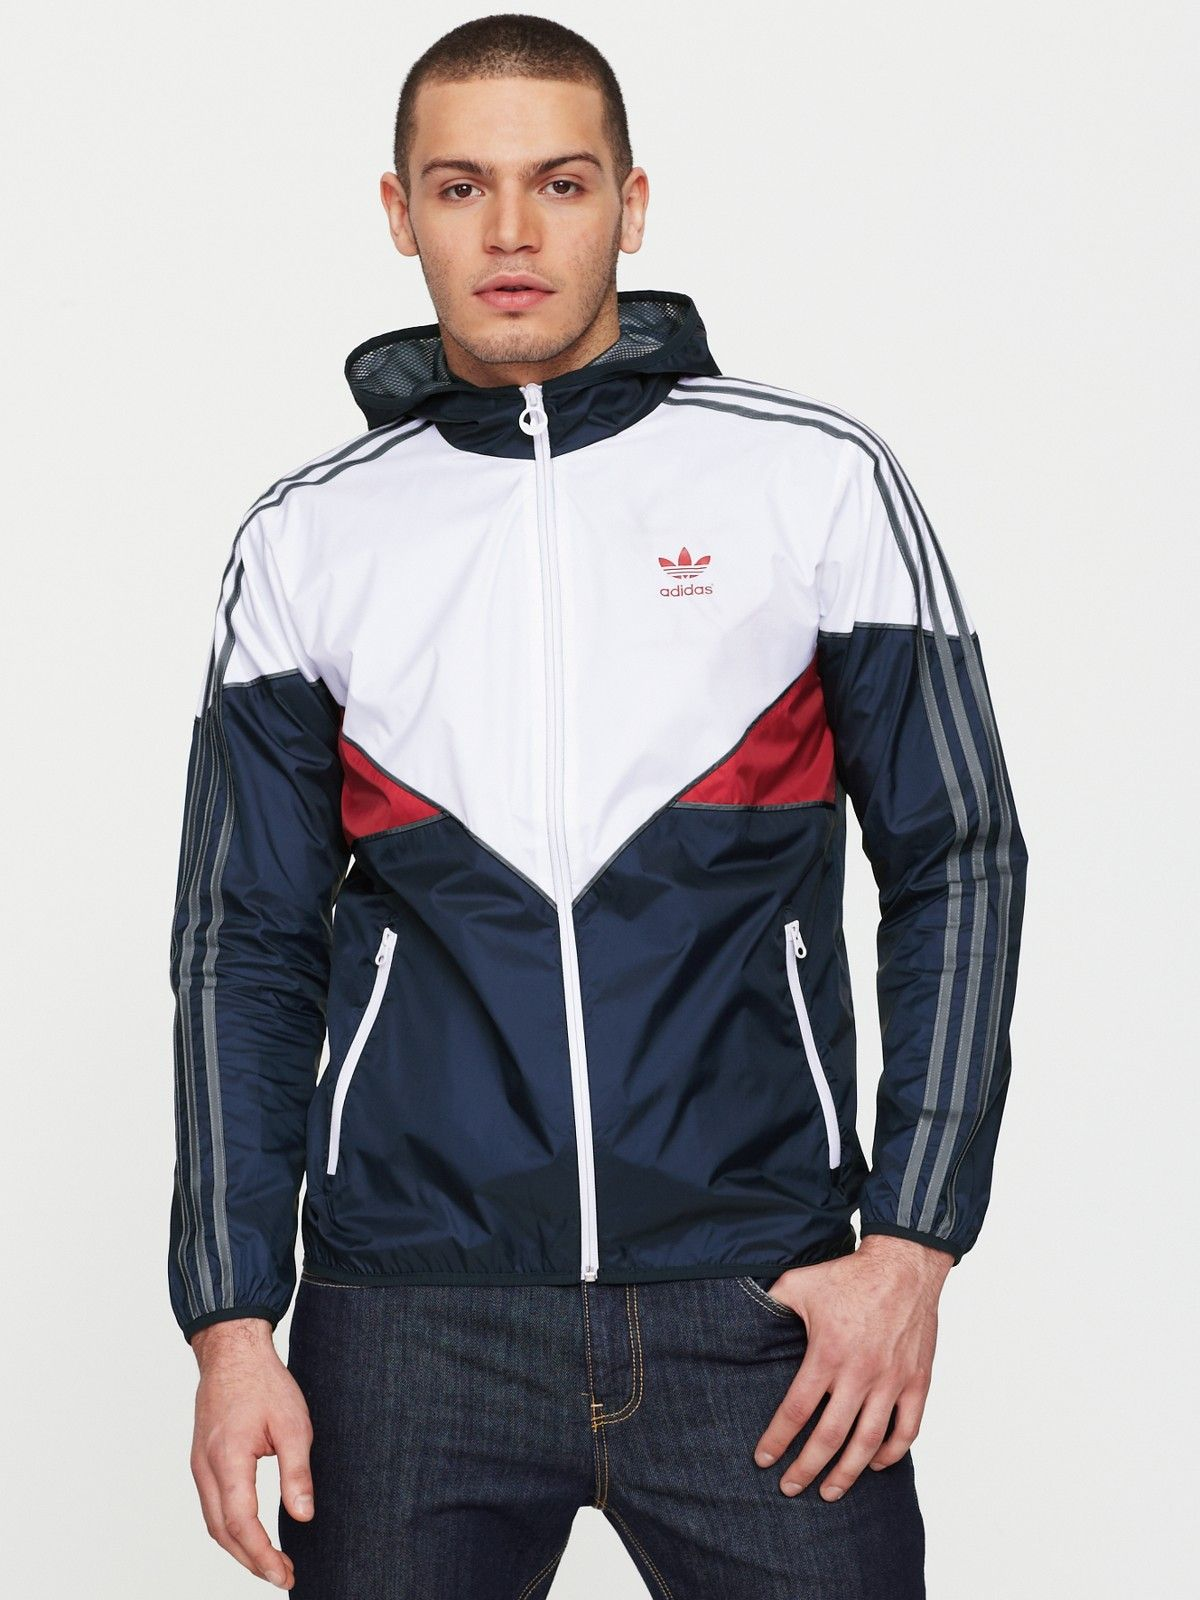 35773d6ec656 Adidas Originals Originals Mens Windbreaker Jacket